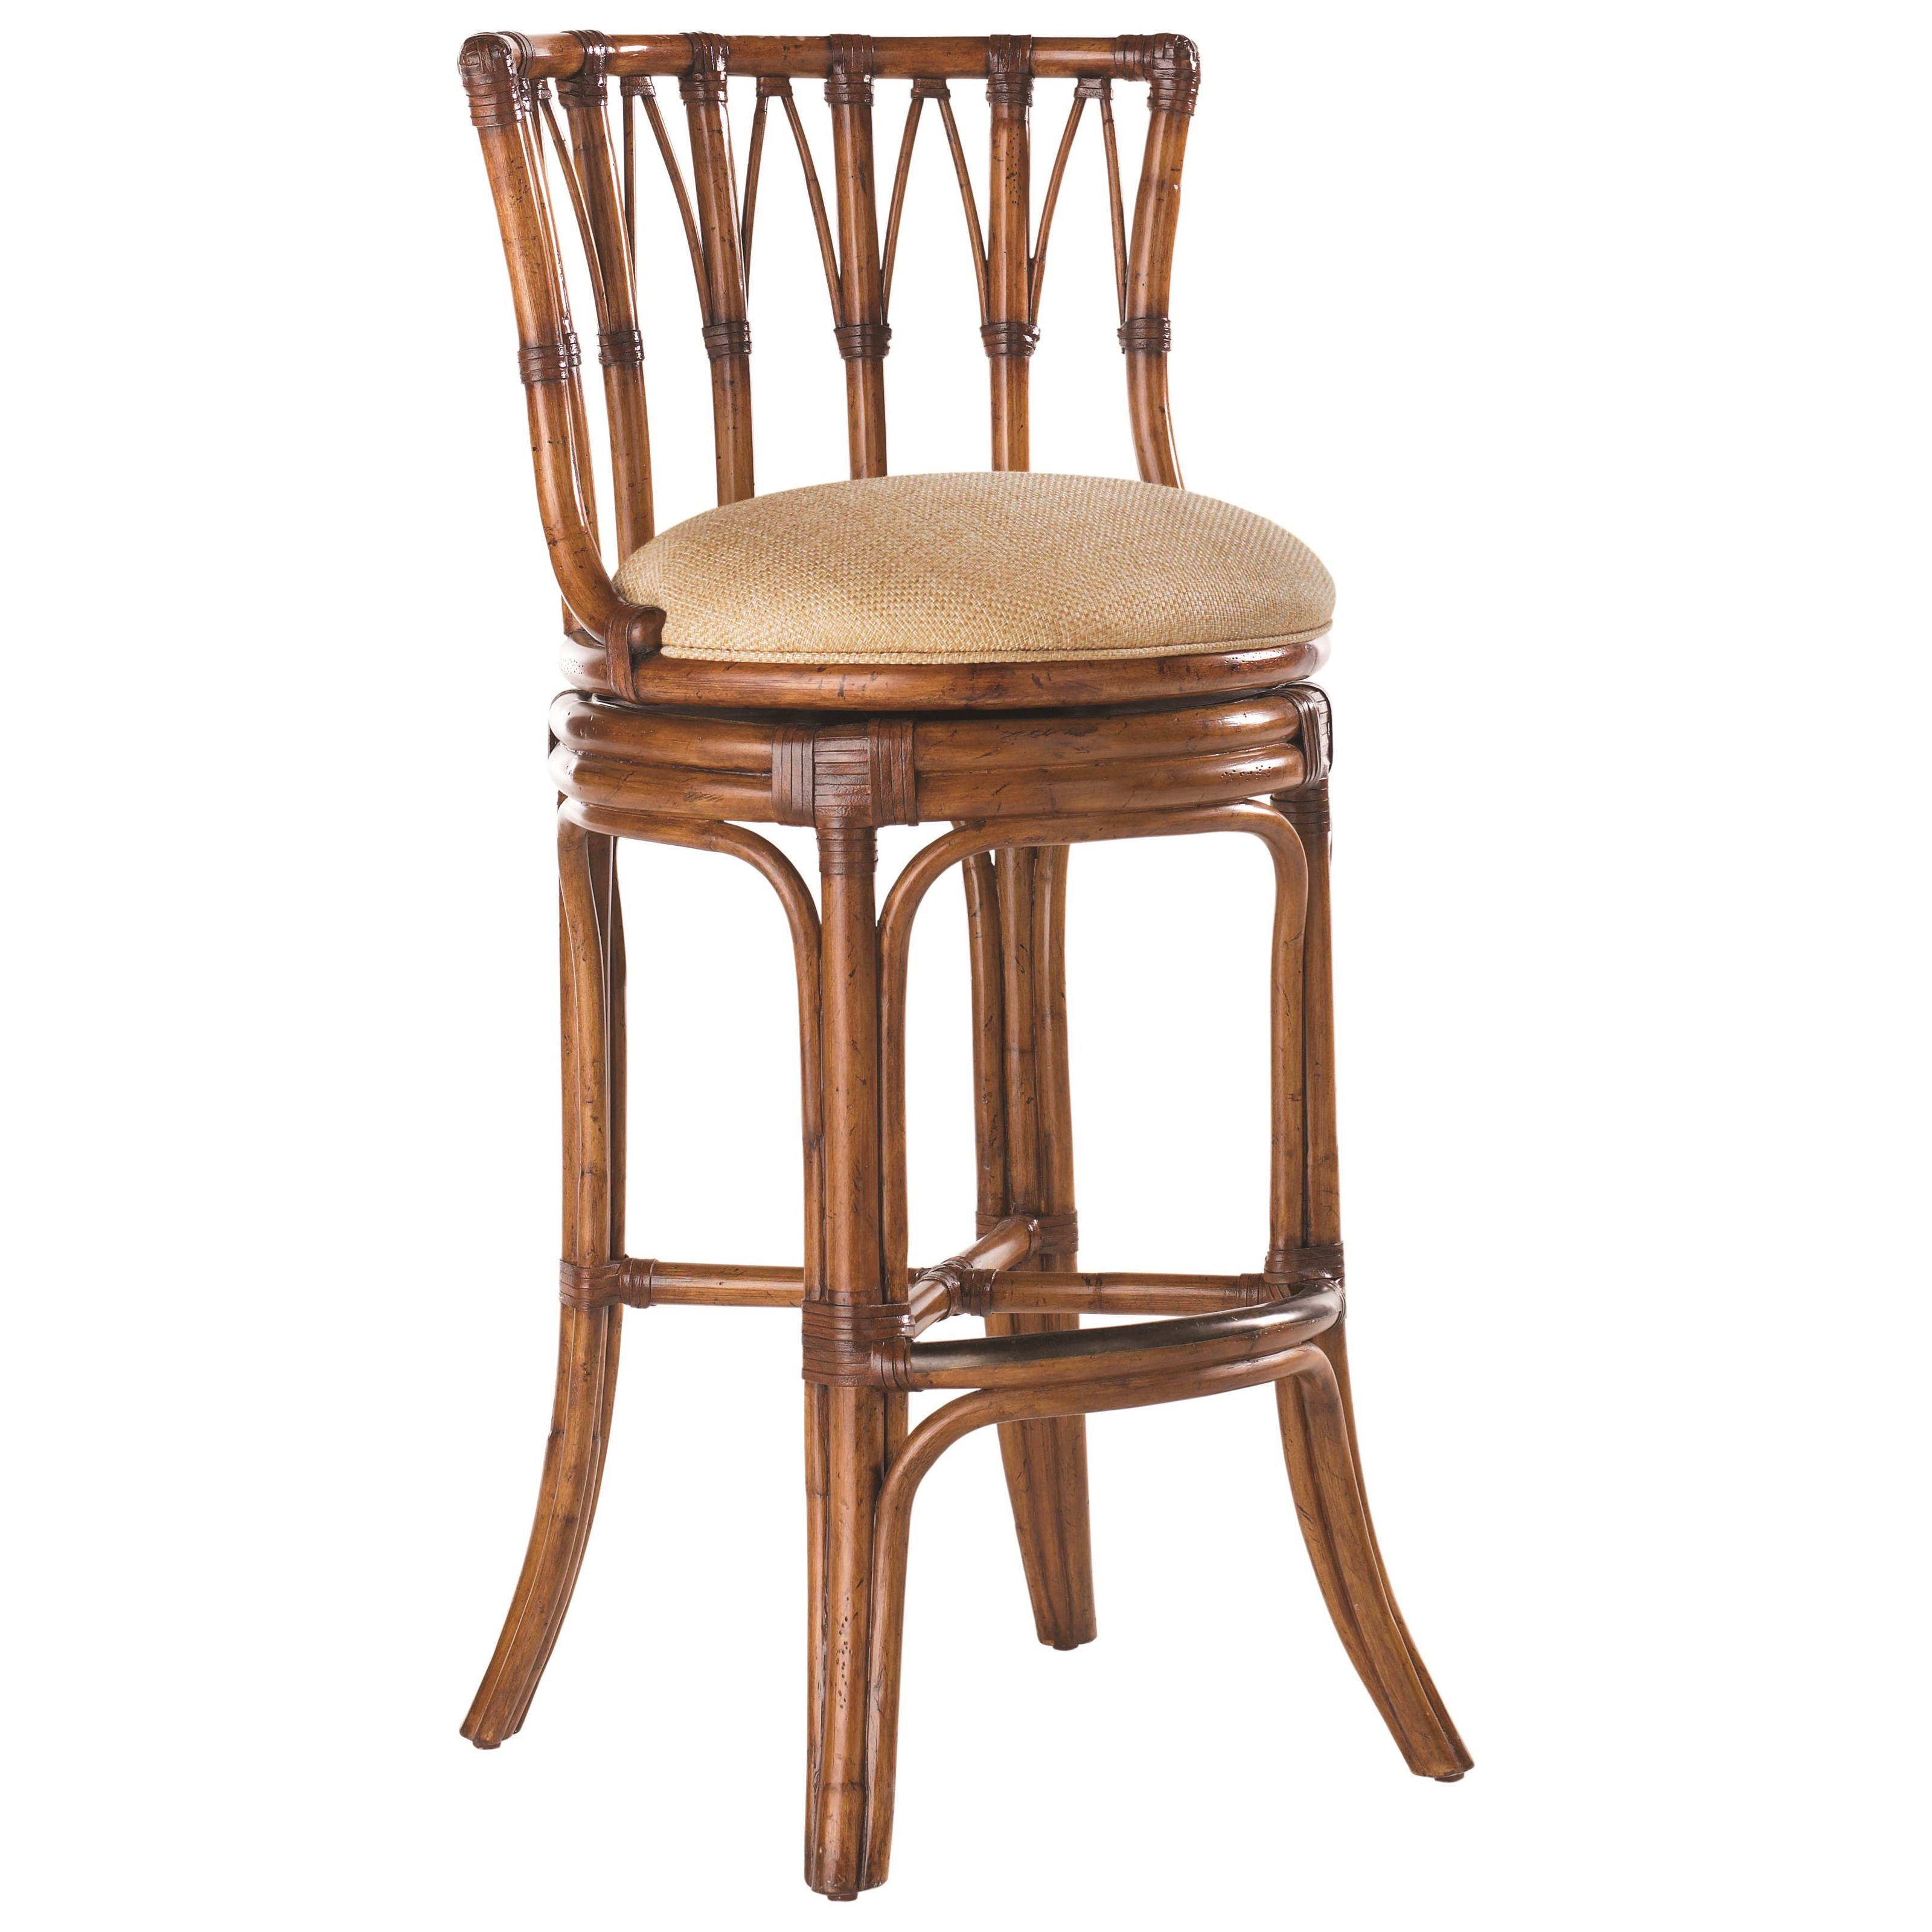 Island Estate Quickship South Beach Swivel Bar Stool by Tommy Bahama Home at Baer's Furniture